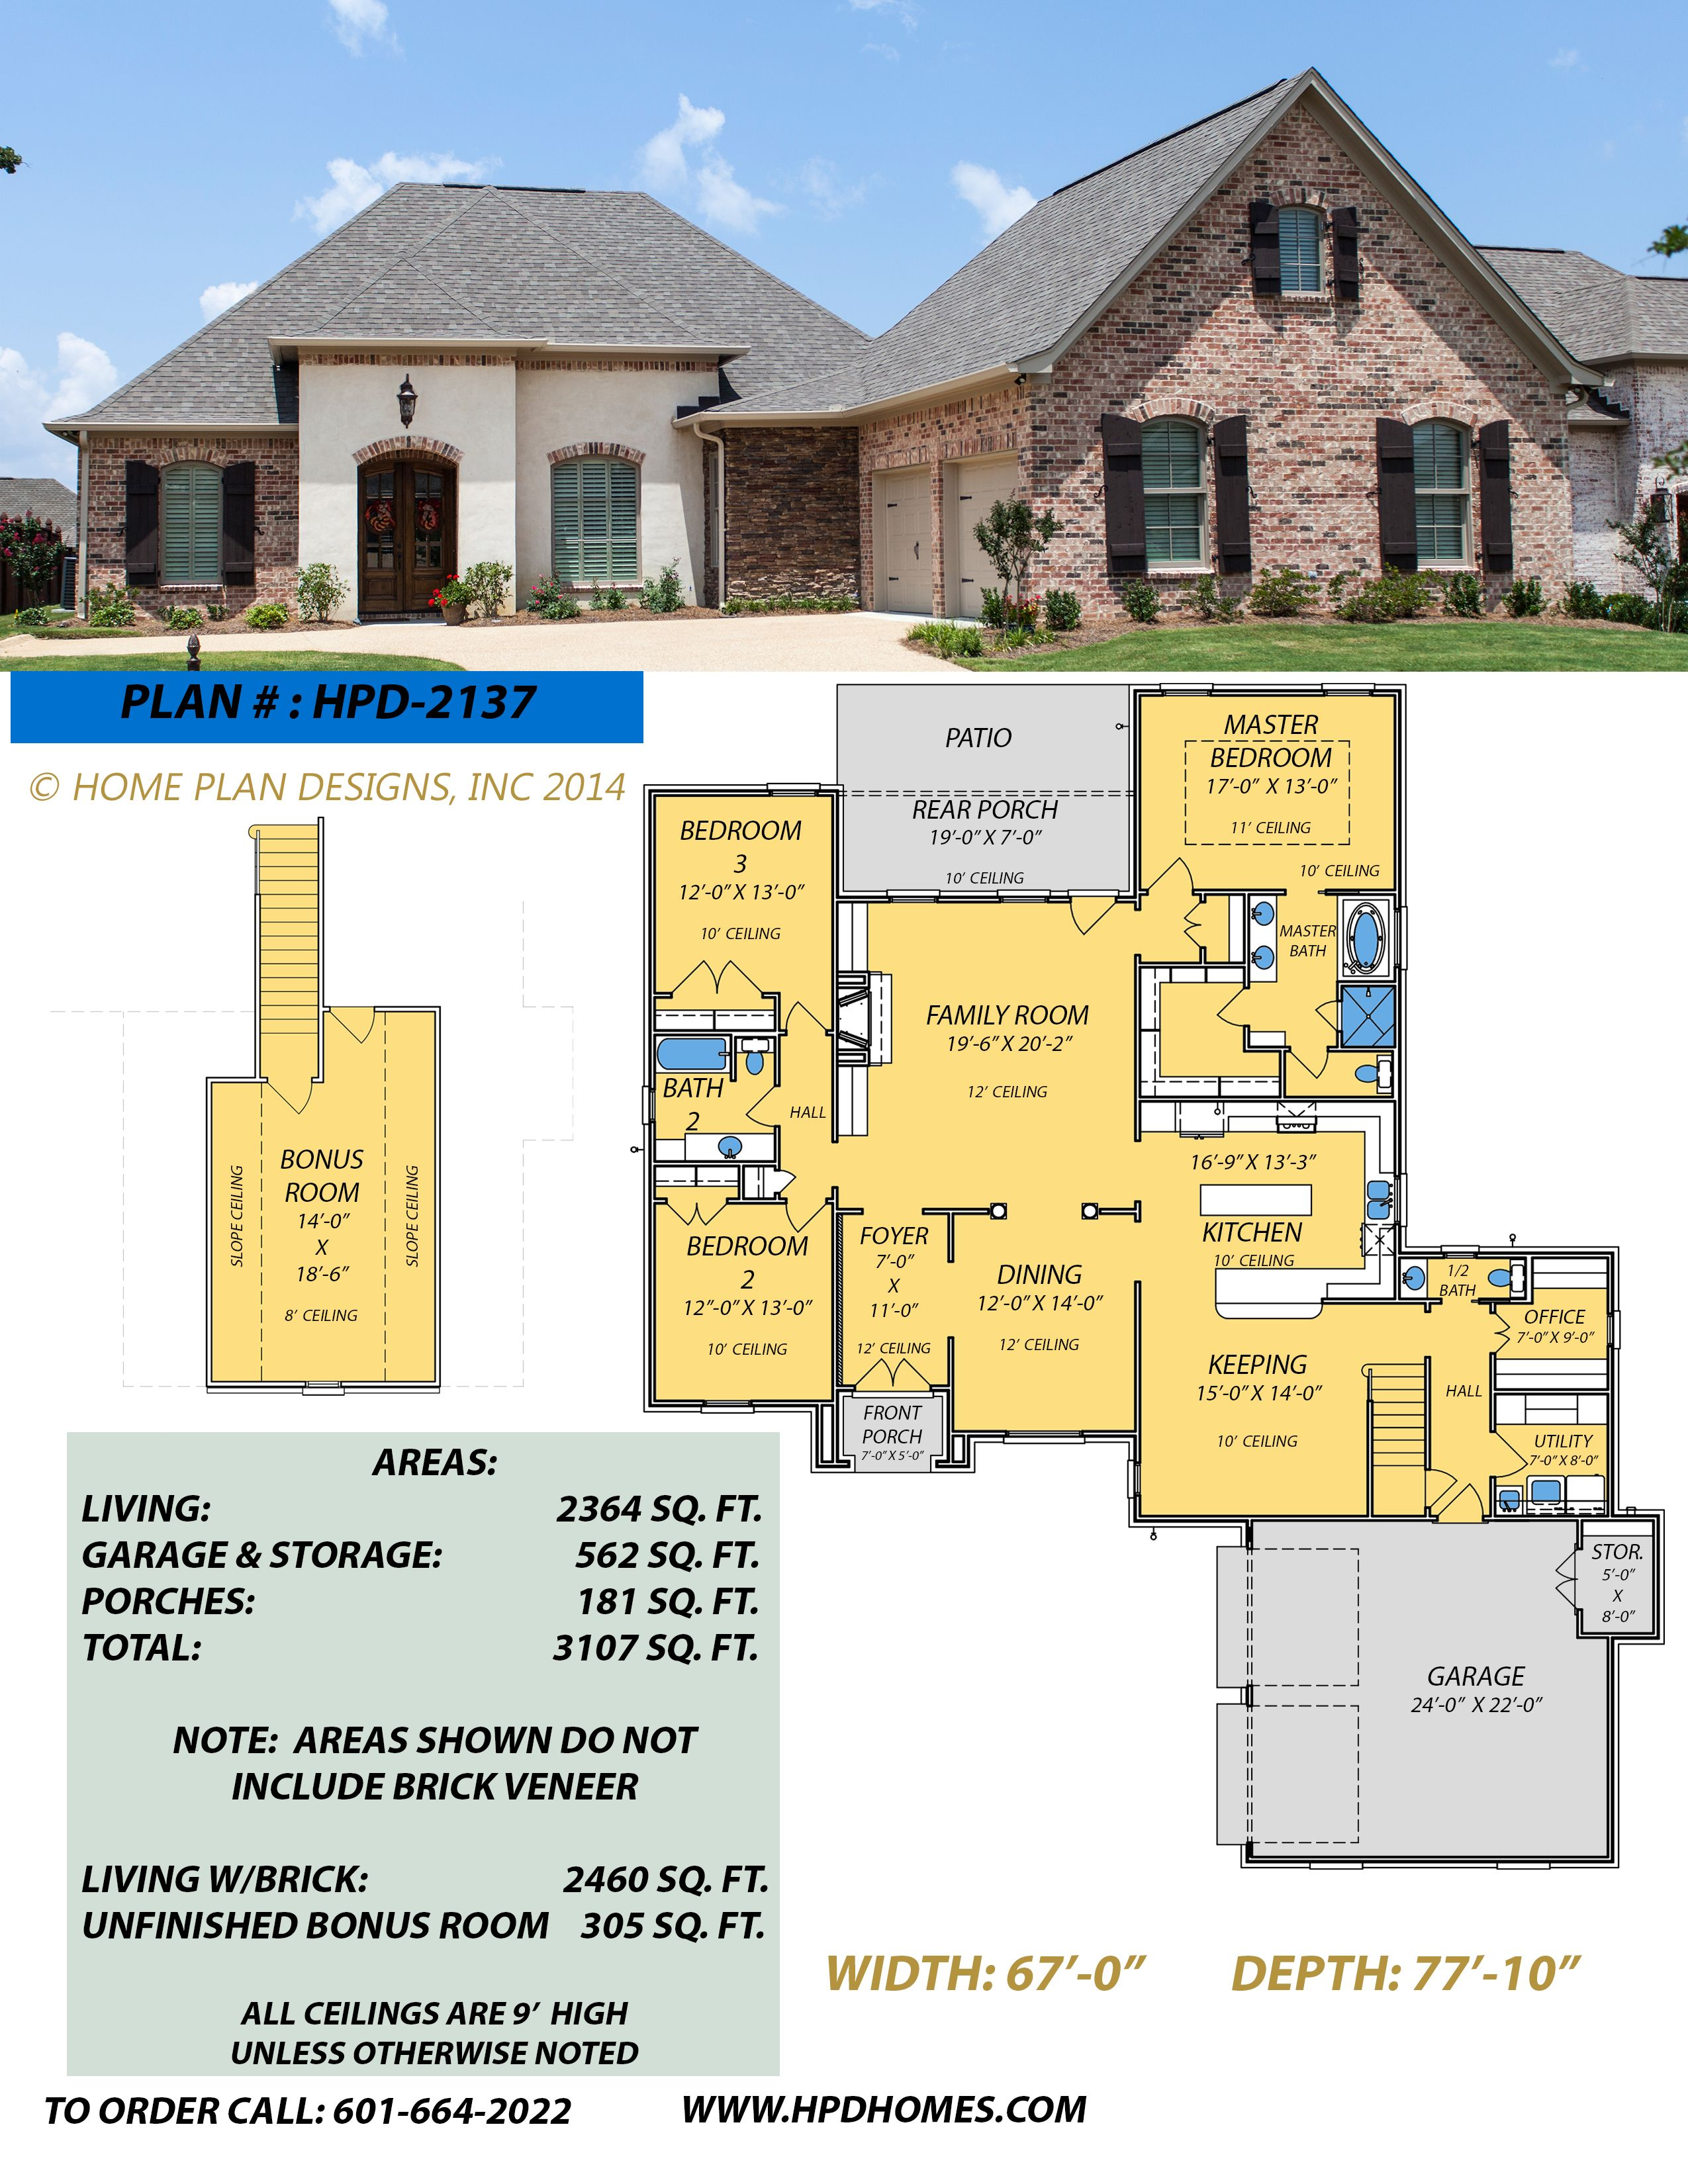 Home Plan Designs Www.hpdhomes.com Judson Wallace 601-664